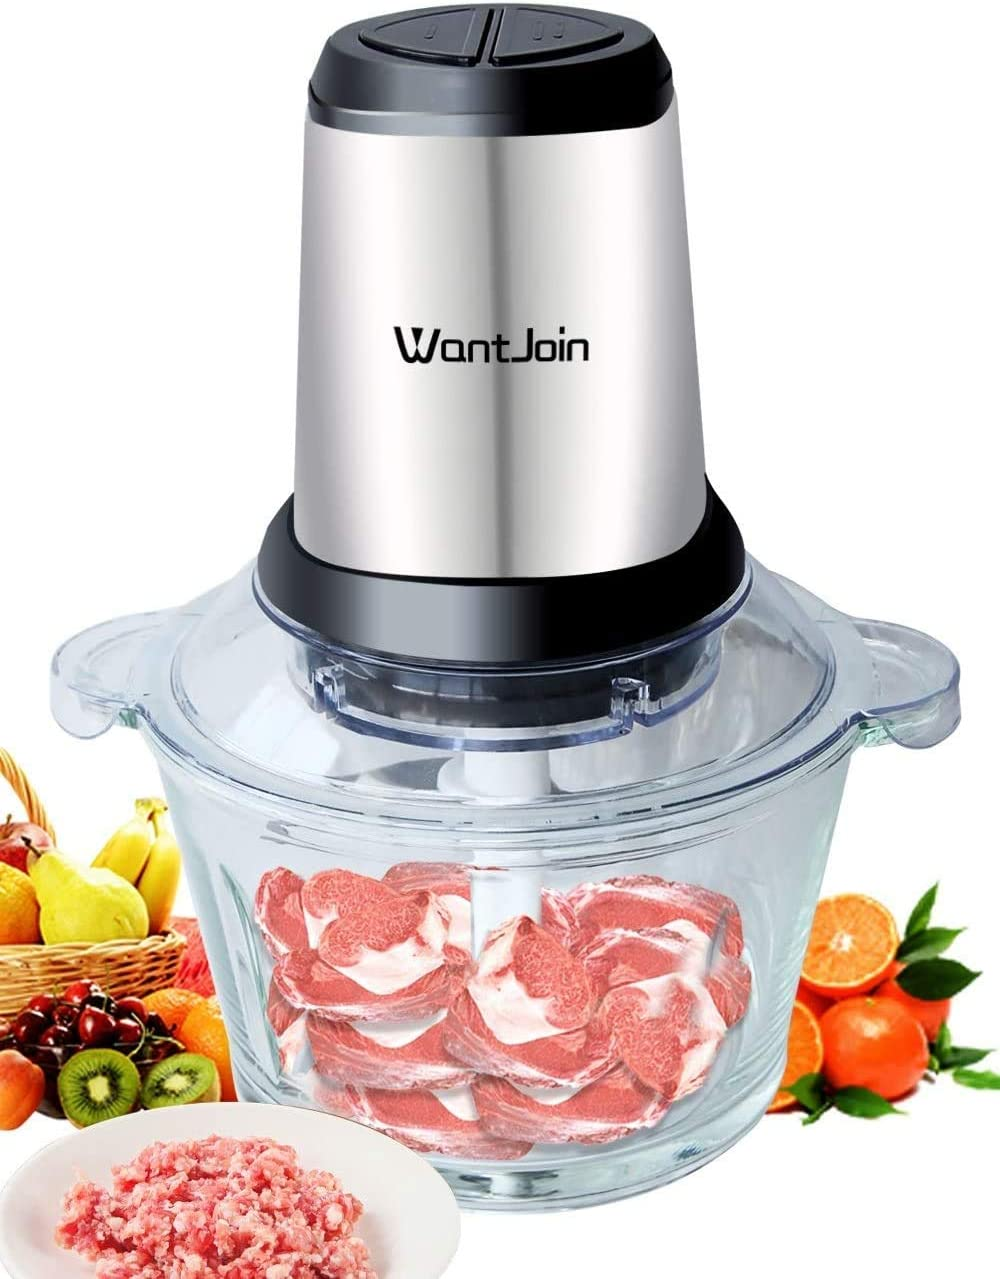 WantJoin Electric Food Processor Meat Grinder and Food Chopper with 4 Titanium Coating Blades Glass Bowl Blender Grinder for Meat, Vegetables, Fruits and Nuts, Fast & Slow 2-Speed (2L)